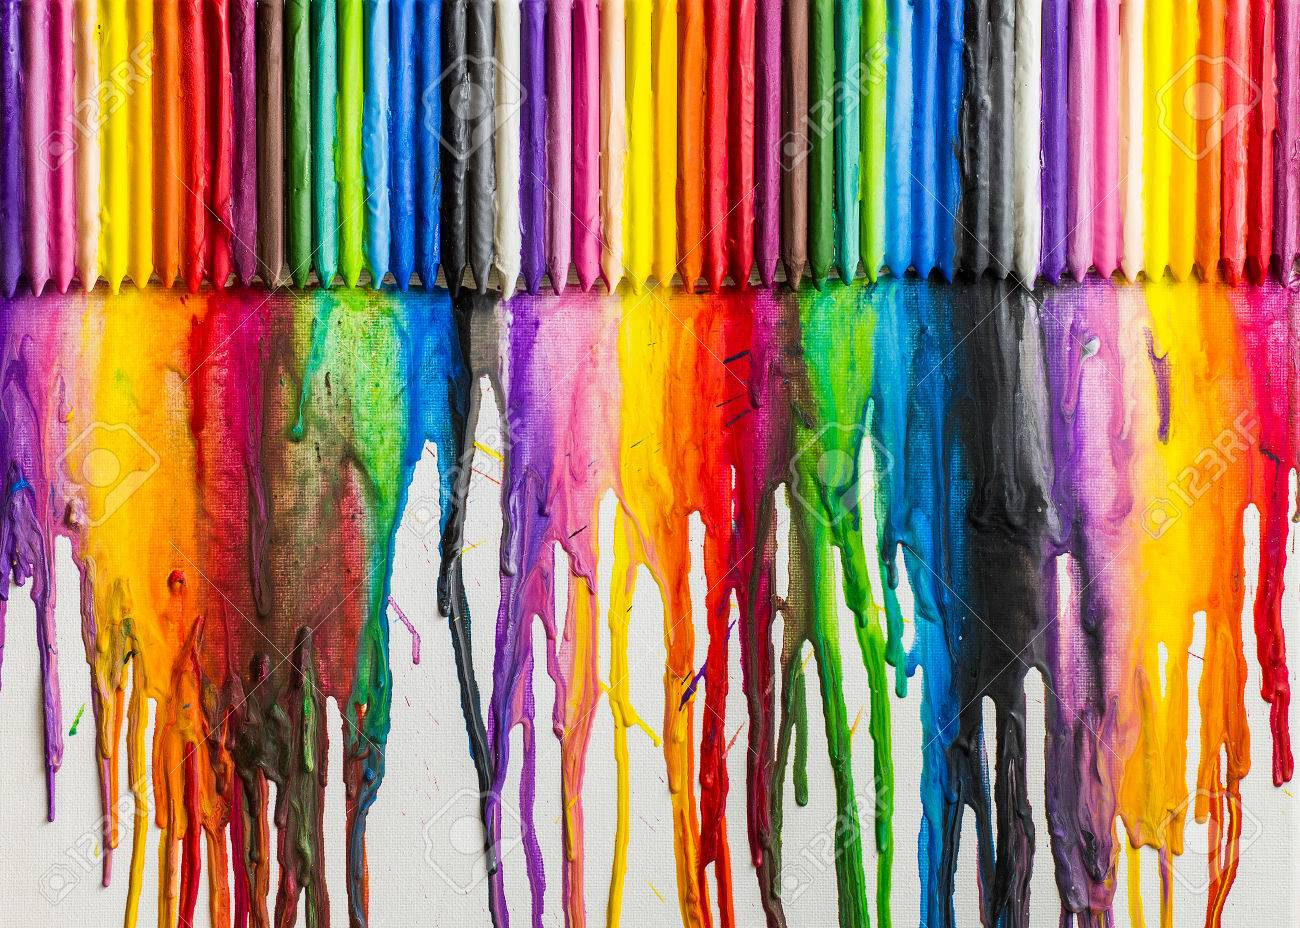 Abstract Art Using Melted Crayons